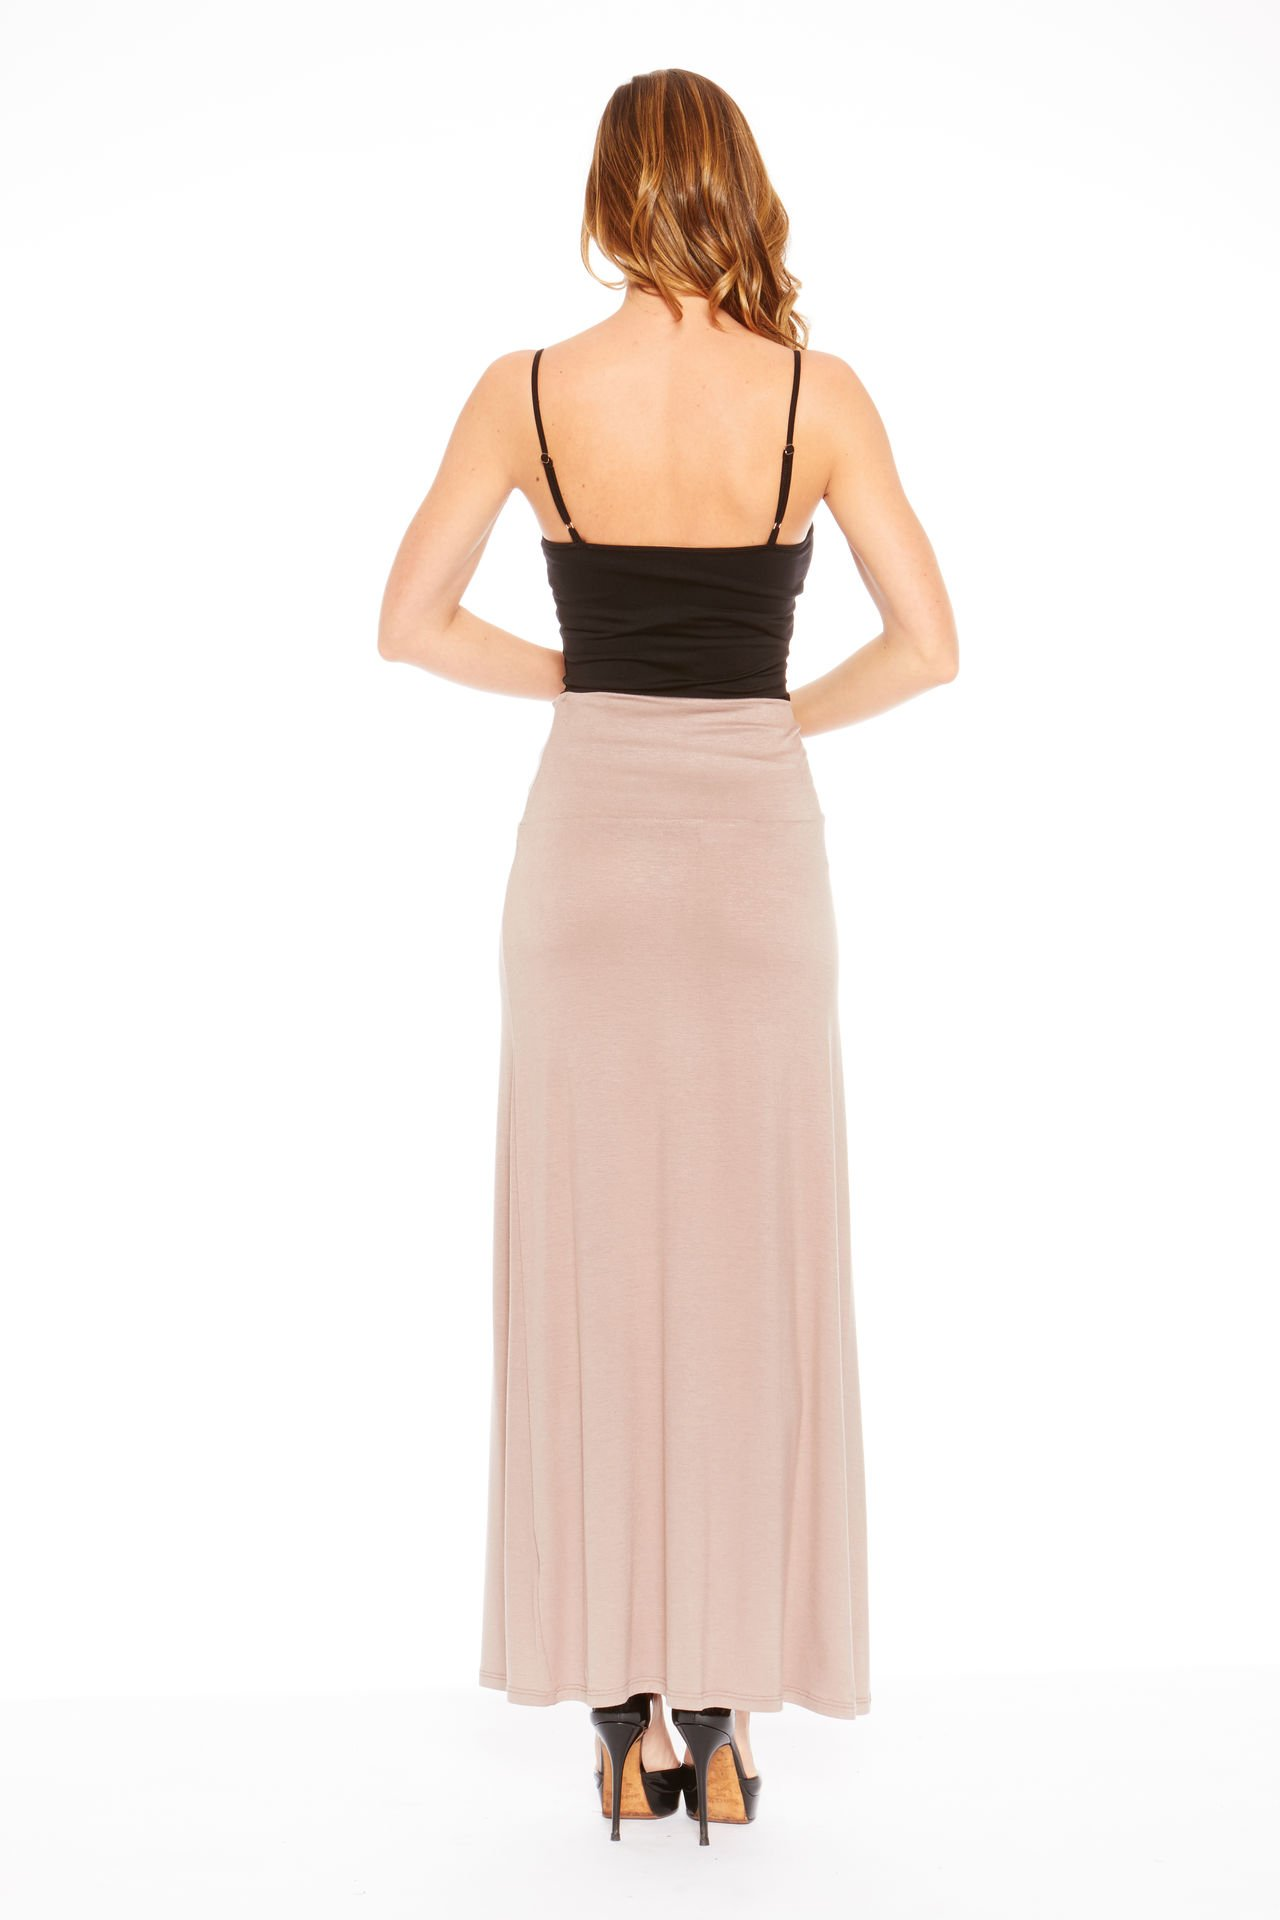 Red Hanger Women's Stylish Solid Long Maxi Skirt - Made in USA, Taupe-1X by Red Hanger (Image #3)